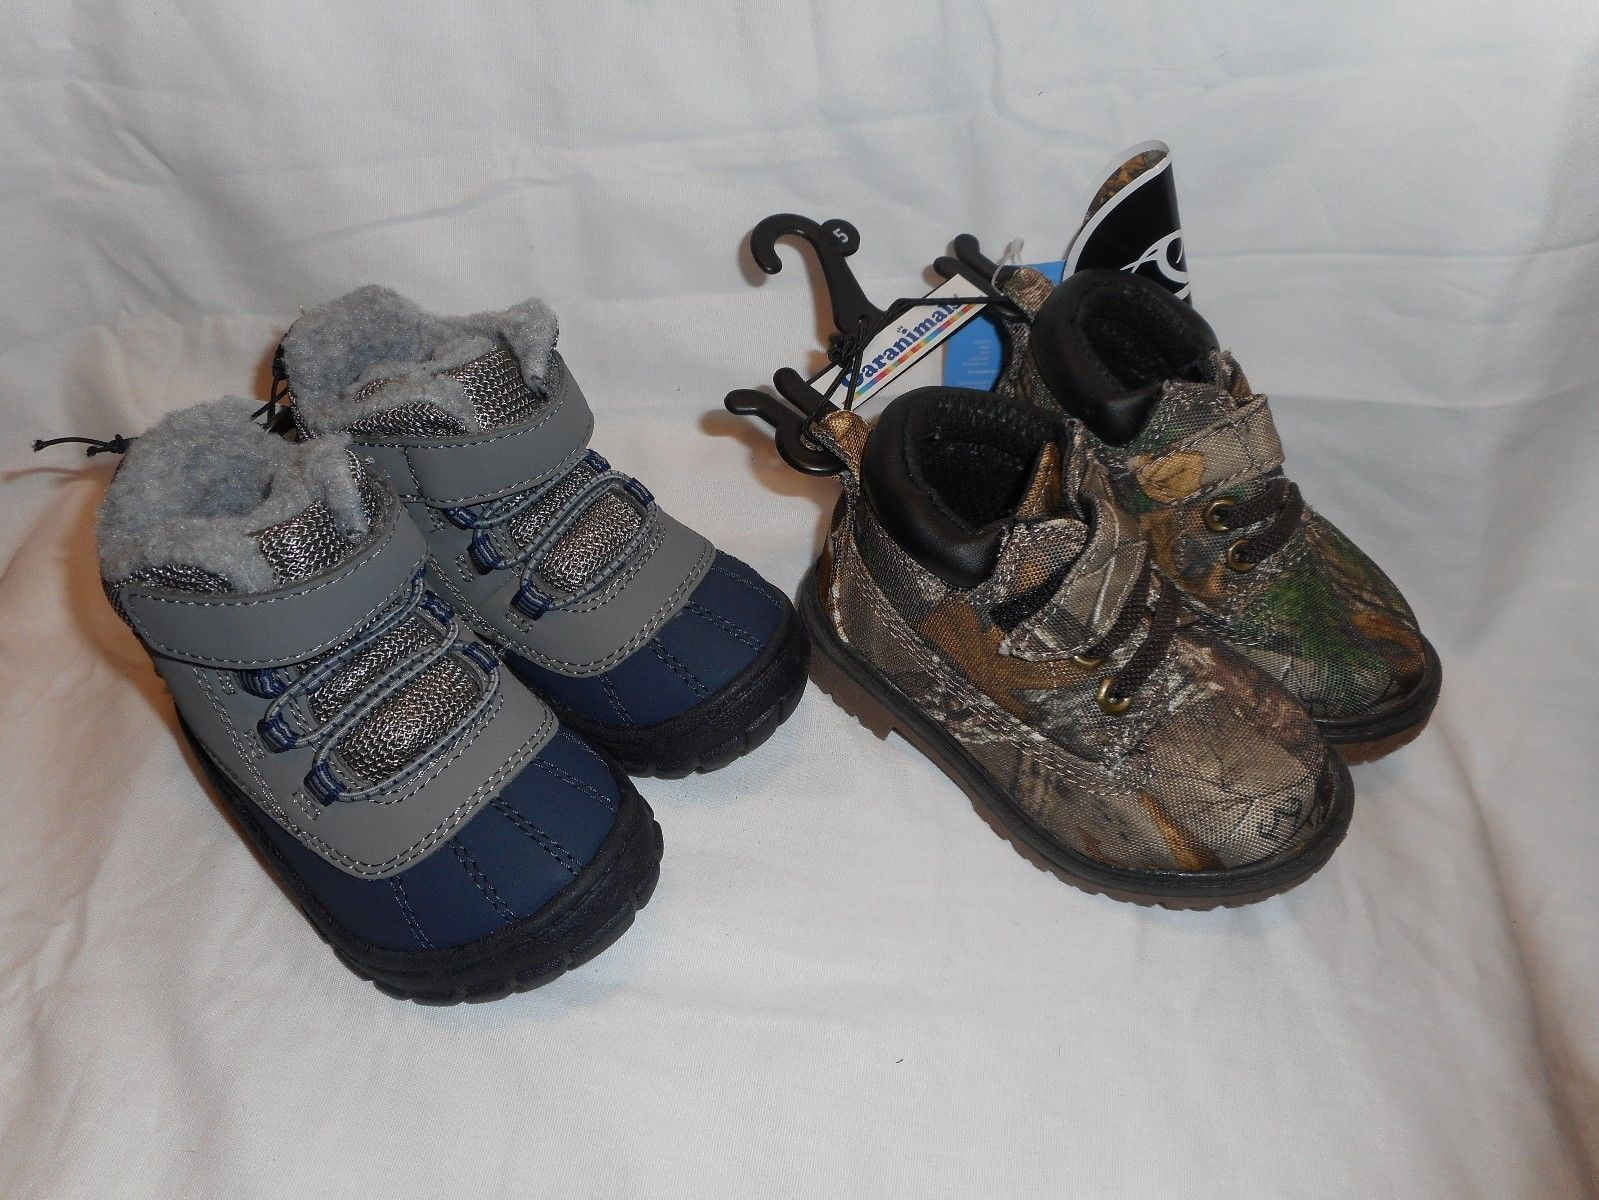 35e3b3156bbe0 Boy's Toddler Garanimals Boots 2 Pair Size 5 and 50 similar items